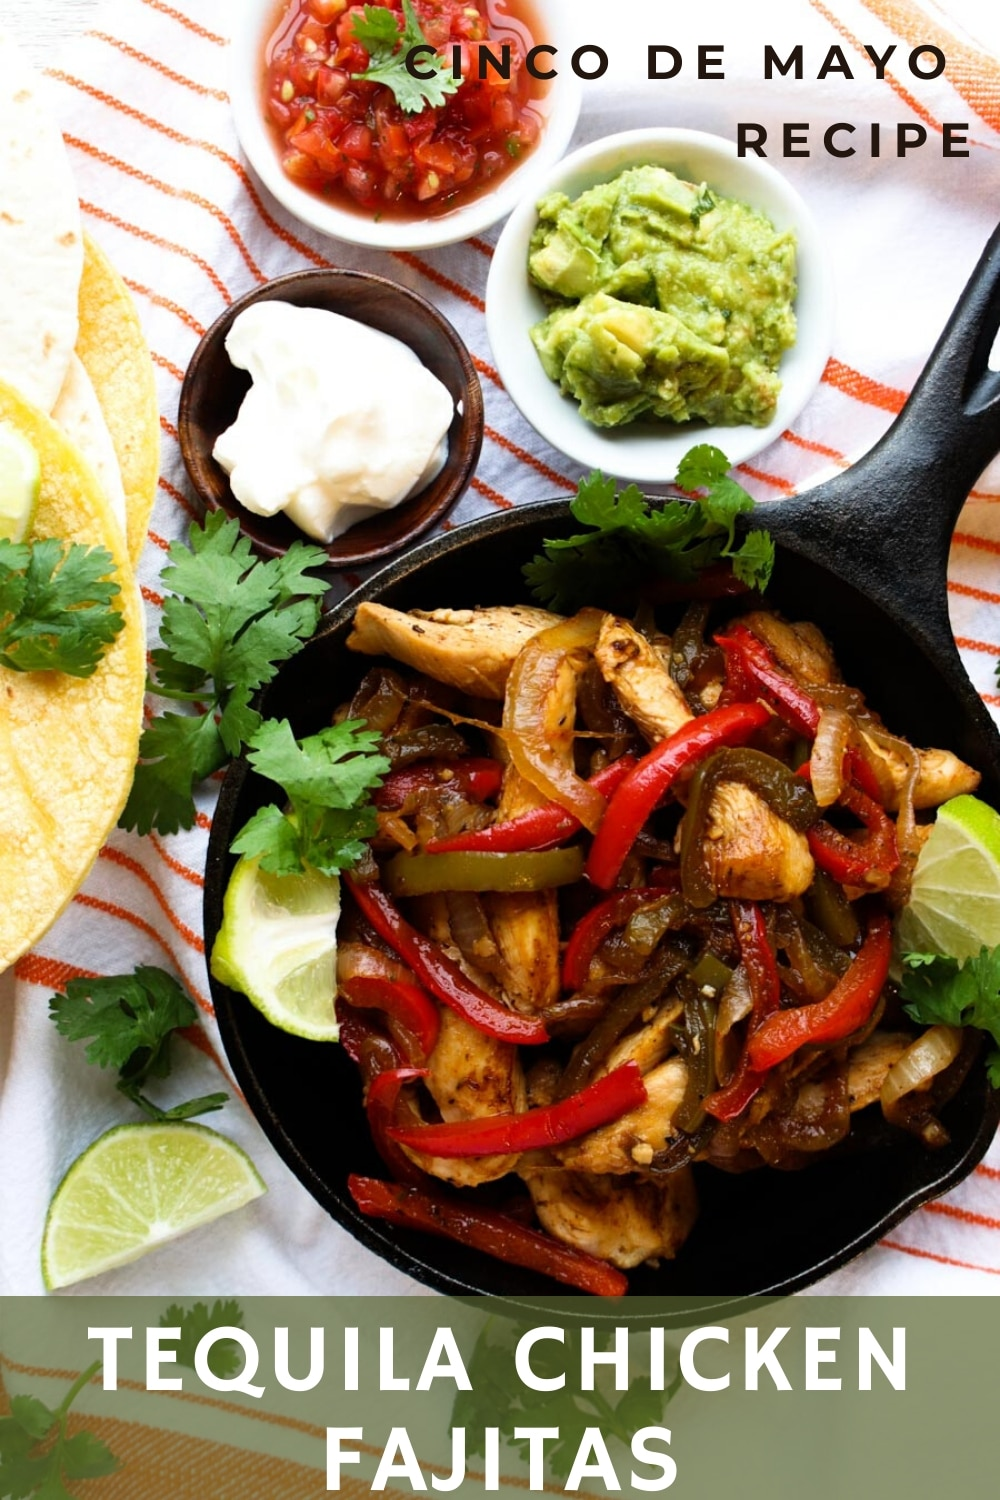 Tequila Chicken Fajitas taste just like your favorite restaurant version with a twist. The twist is in the tequila marinade that makes the chicken extra zesty.  via @krazykitchenmom